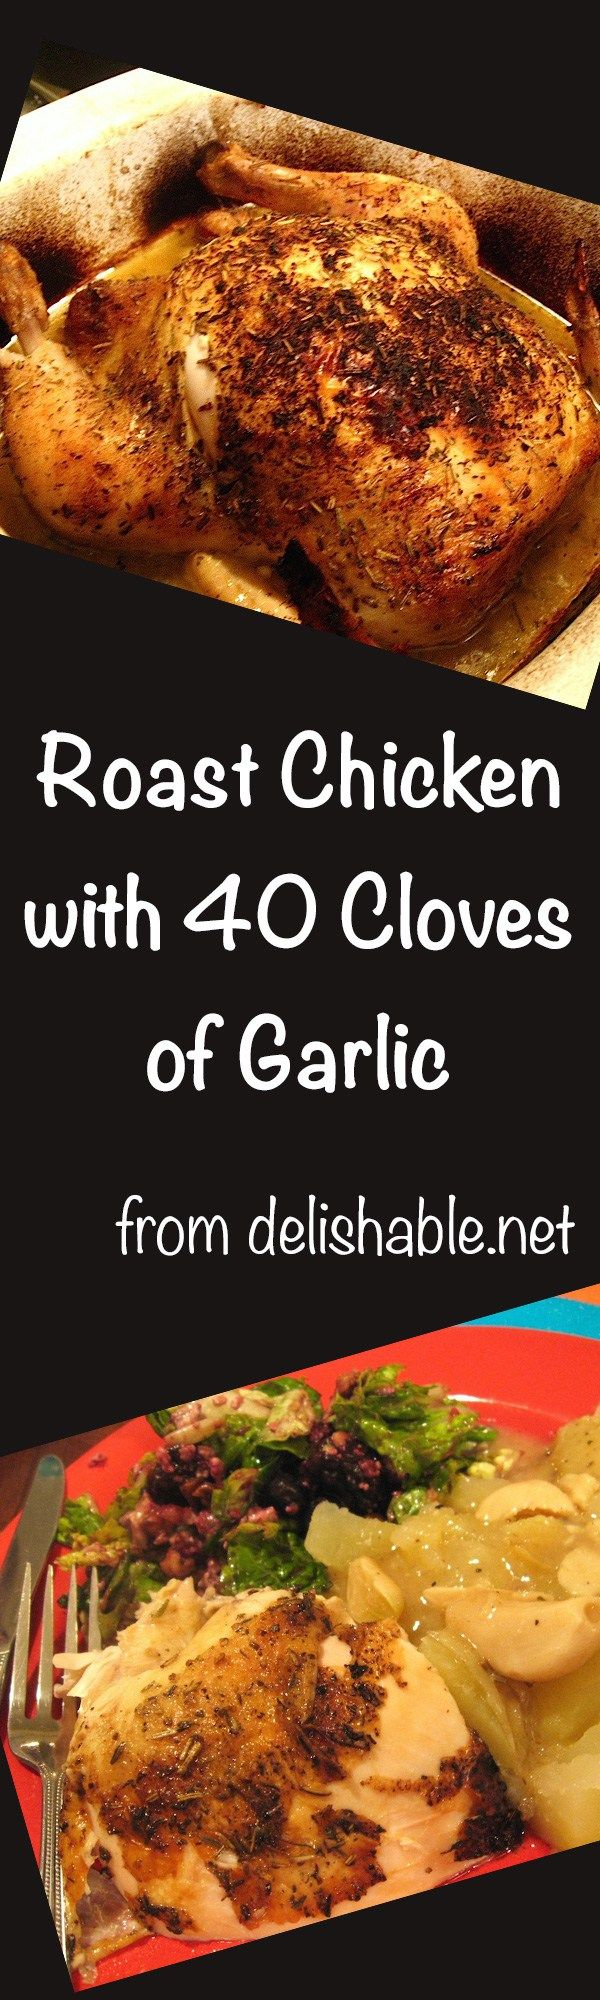 Roast Chicken with 40 Cloves of Garlic recipe - simmered in wine, the garlic mellows, giving the sauce a rich flavor, rivaling any favorite chicken entrée. | delishable.net